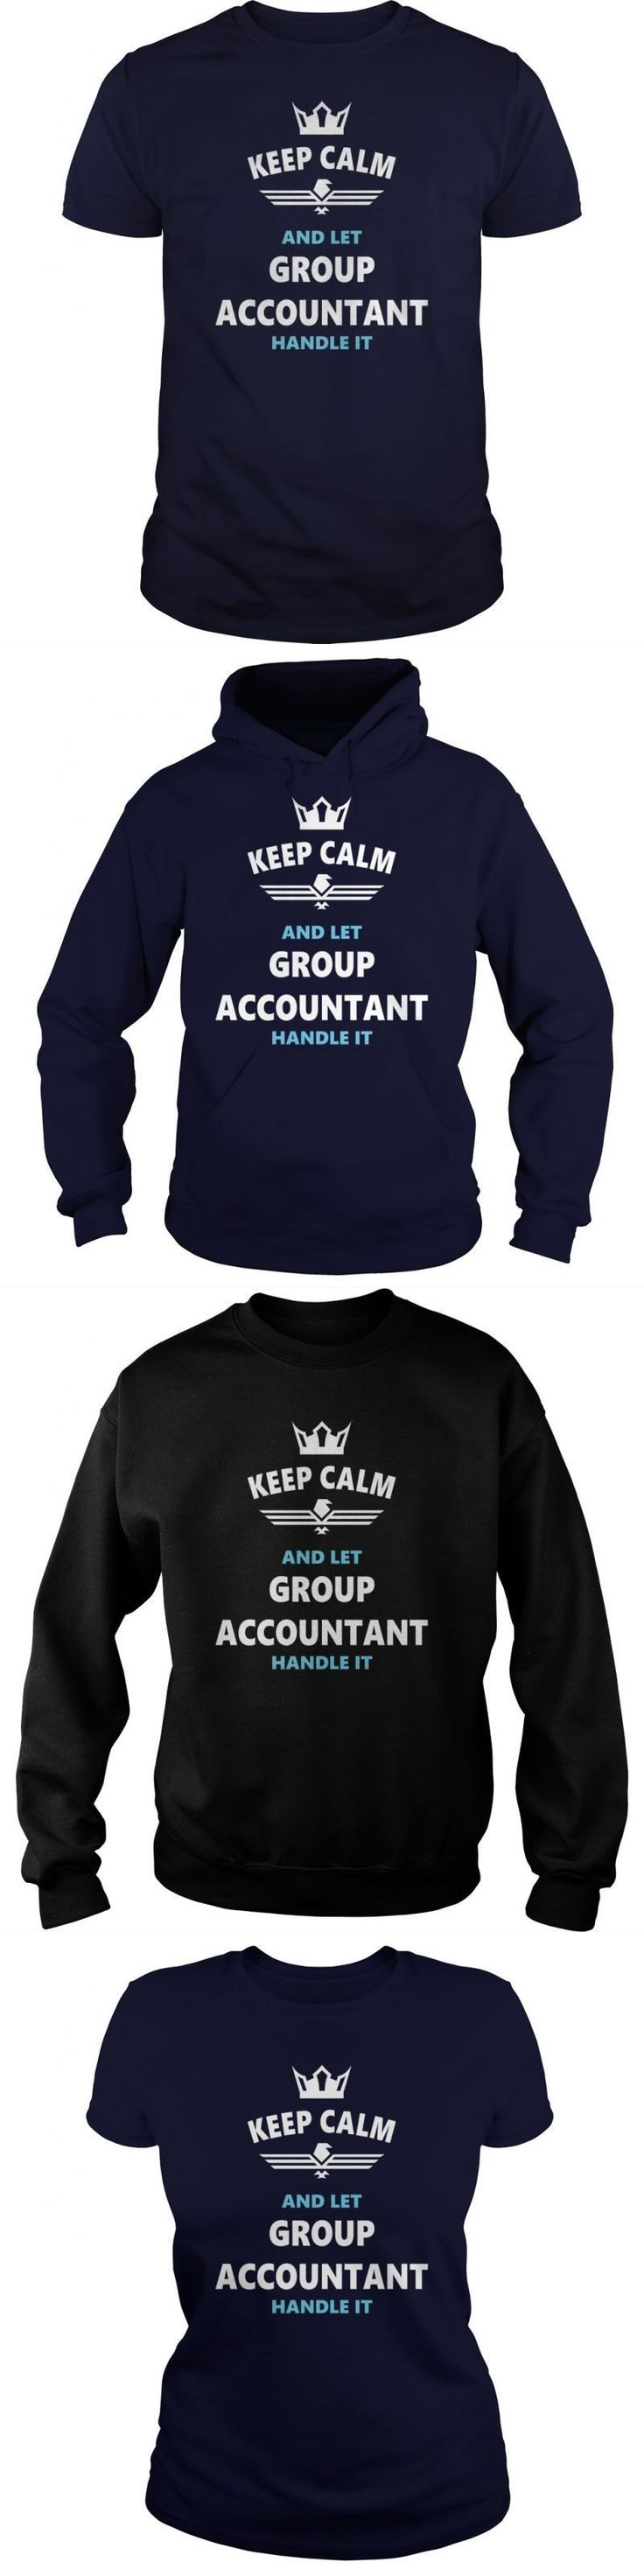 GROUP ACCOUNTANT JOBS T-SHIRT GUYS LADIES YOUTH TEE HOODIE SWEAT SHIRT V-NECK UNISEX SUNFROG BESTSELLER...FIND YOUR JOB HERE:    https://www.sunfrog.com/Jobs/?45454  								  								 Guys Tee Hoodie Sweat Shirt Ladies Tee Youth Tee Guys V-Neck Ladies V-Neck Unisex Tank Top Unisex Longsleeve Tee accountant t shirt sleep with an accountant t shirt financial accountant t shirt t shirt for accountant